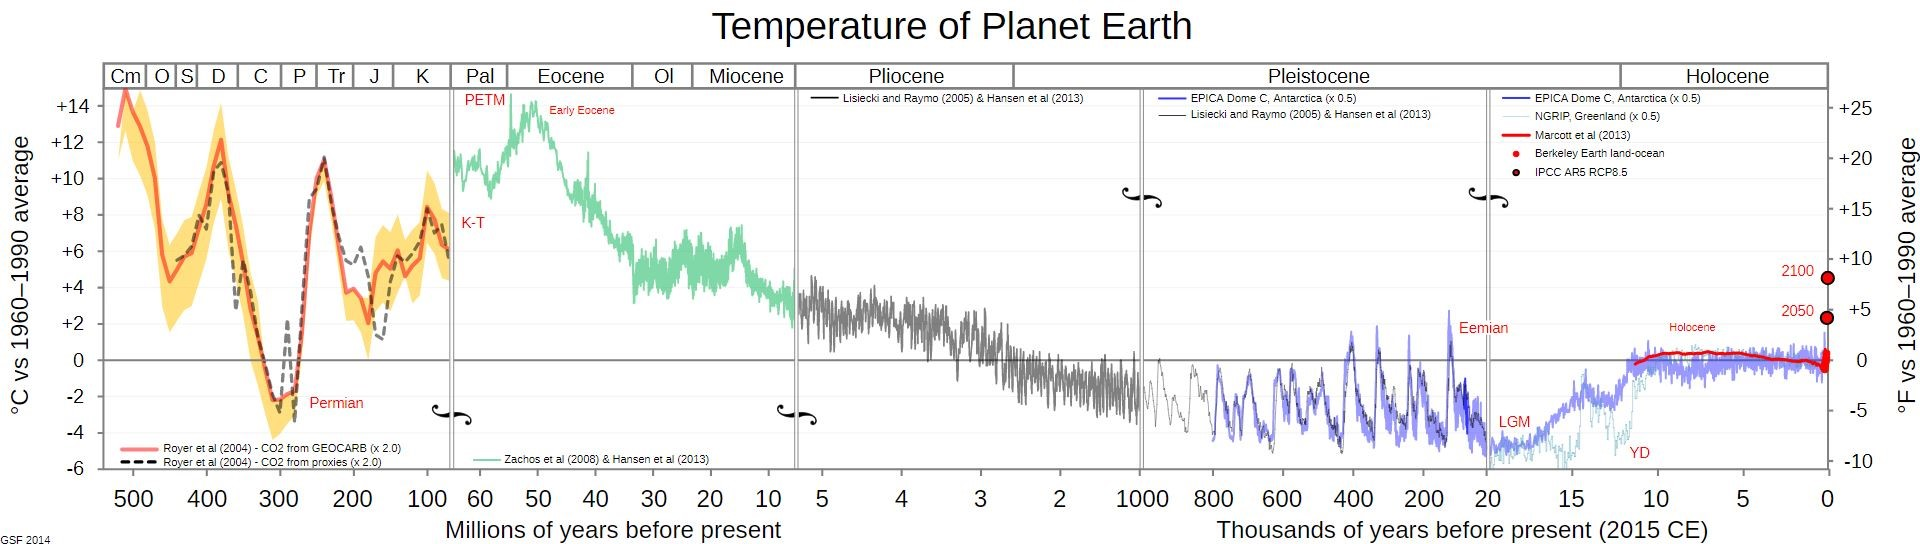 temperature of planet earth